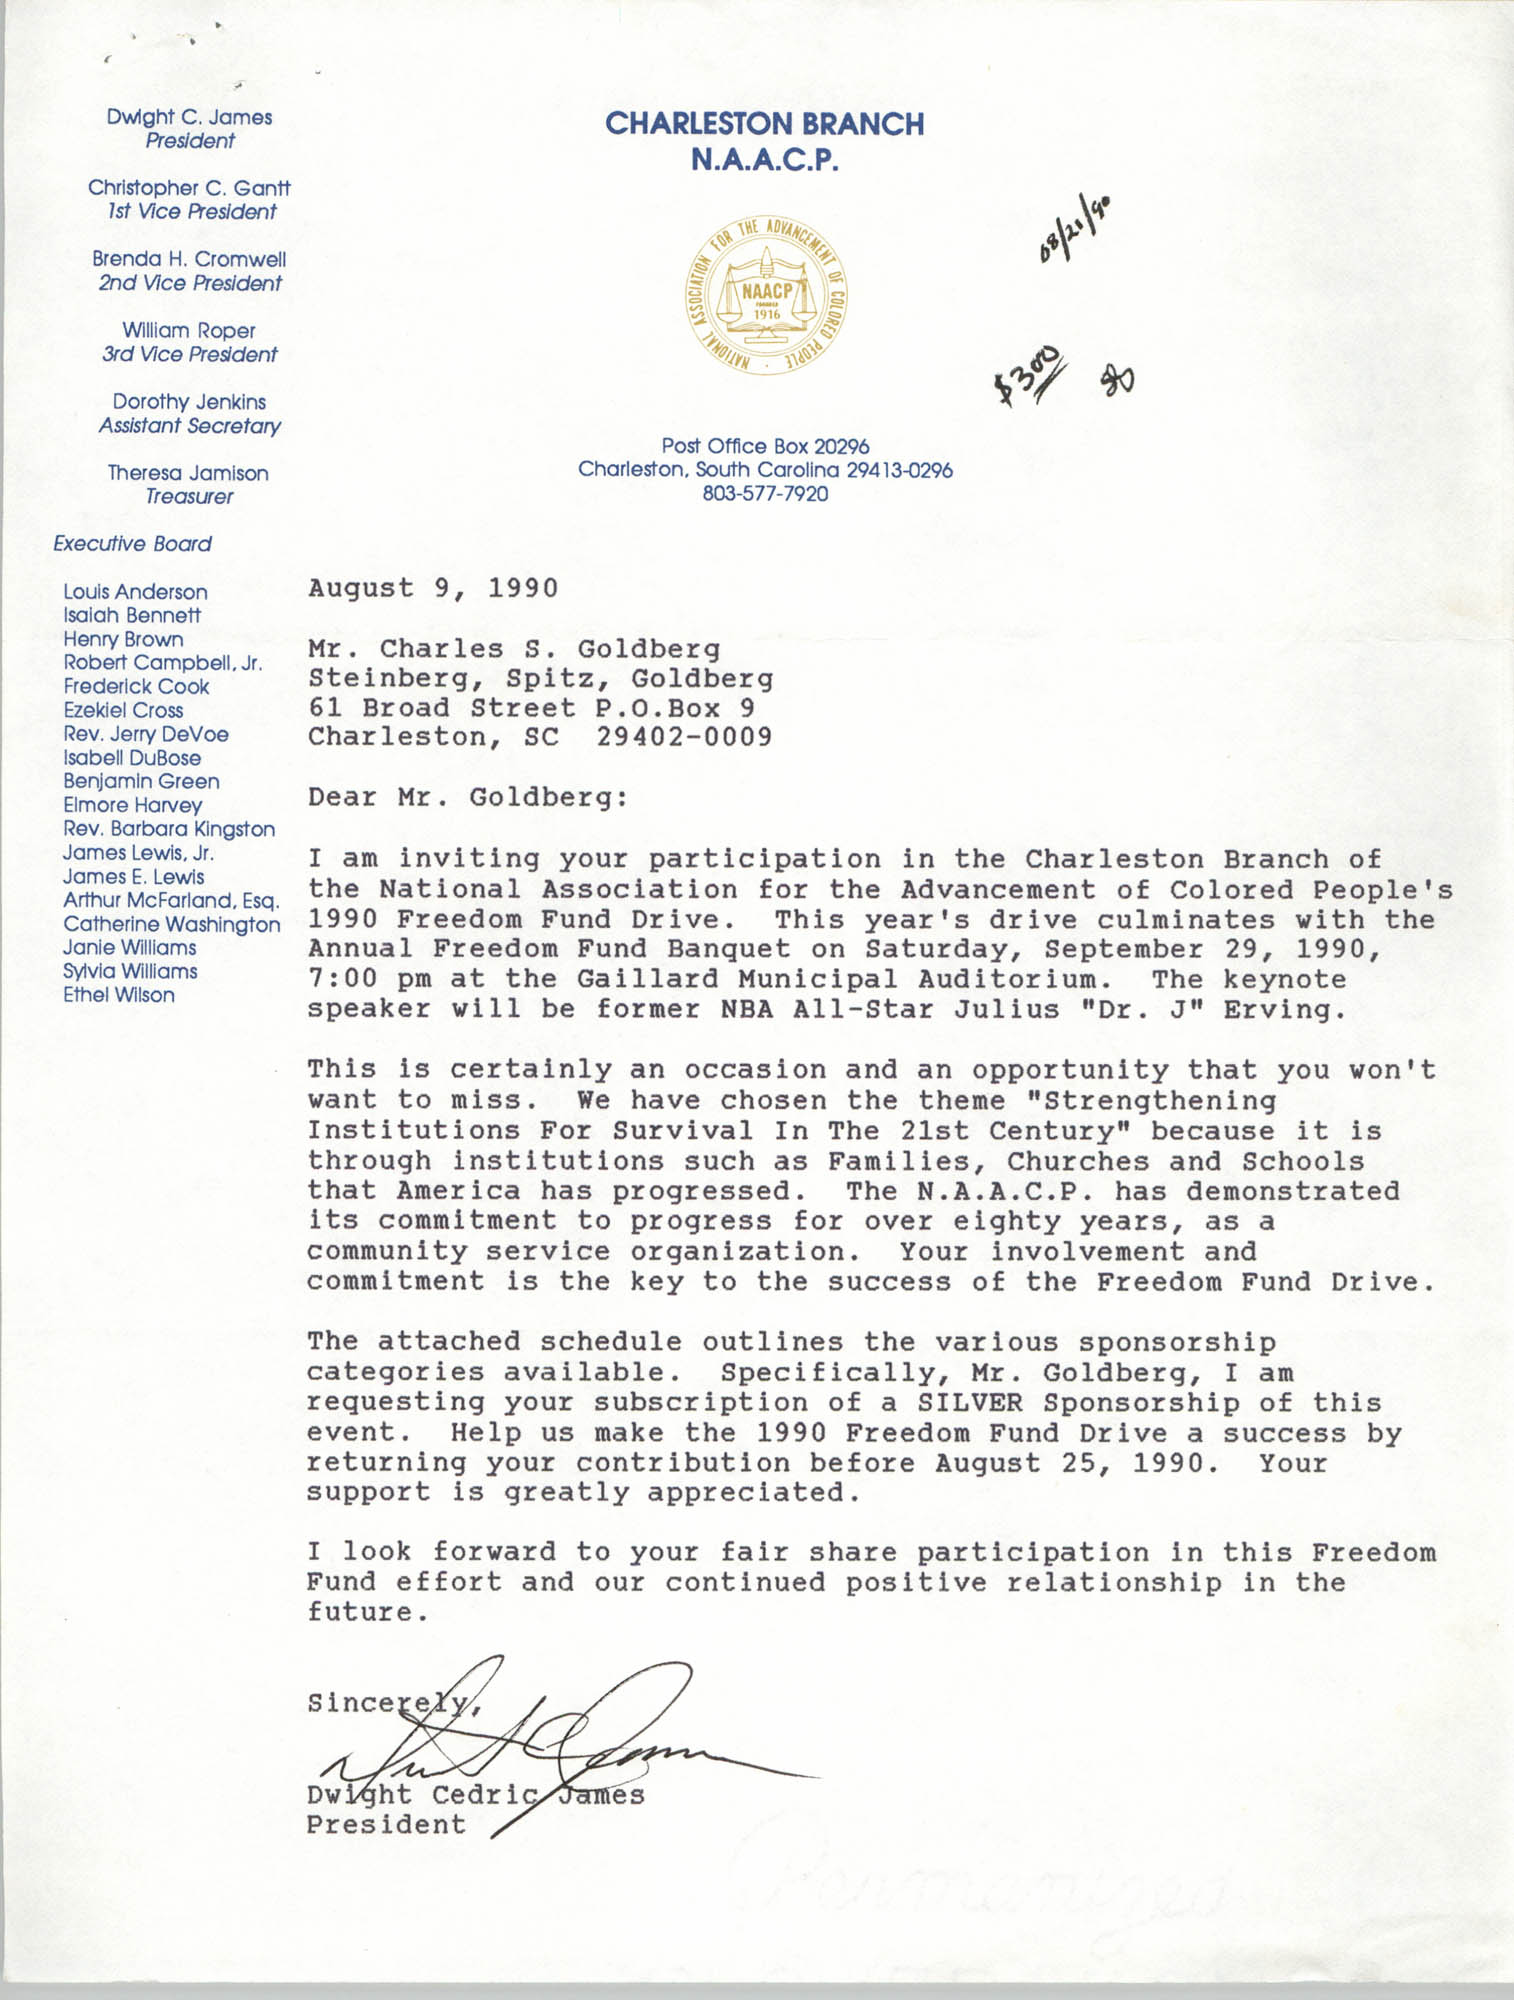 Letter from Dwight C. James to Charles Goldberg, August 9, 1990